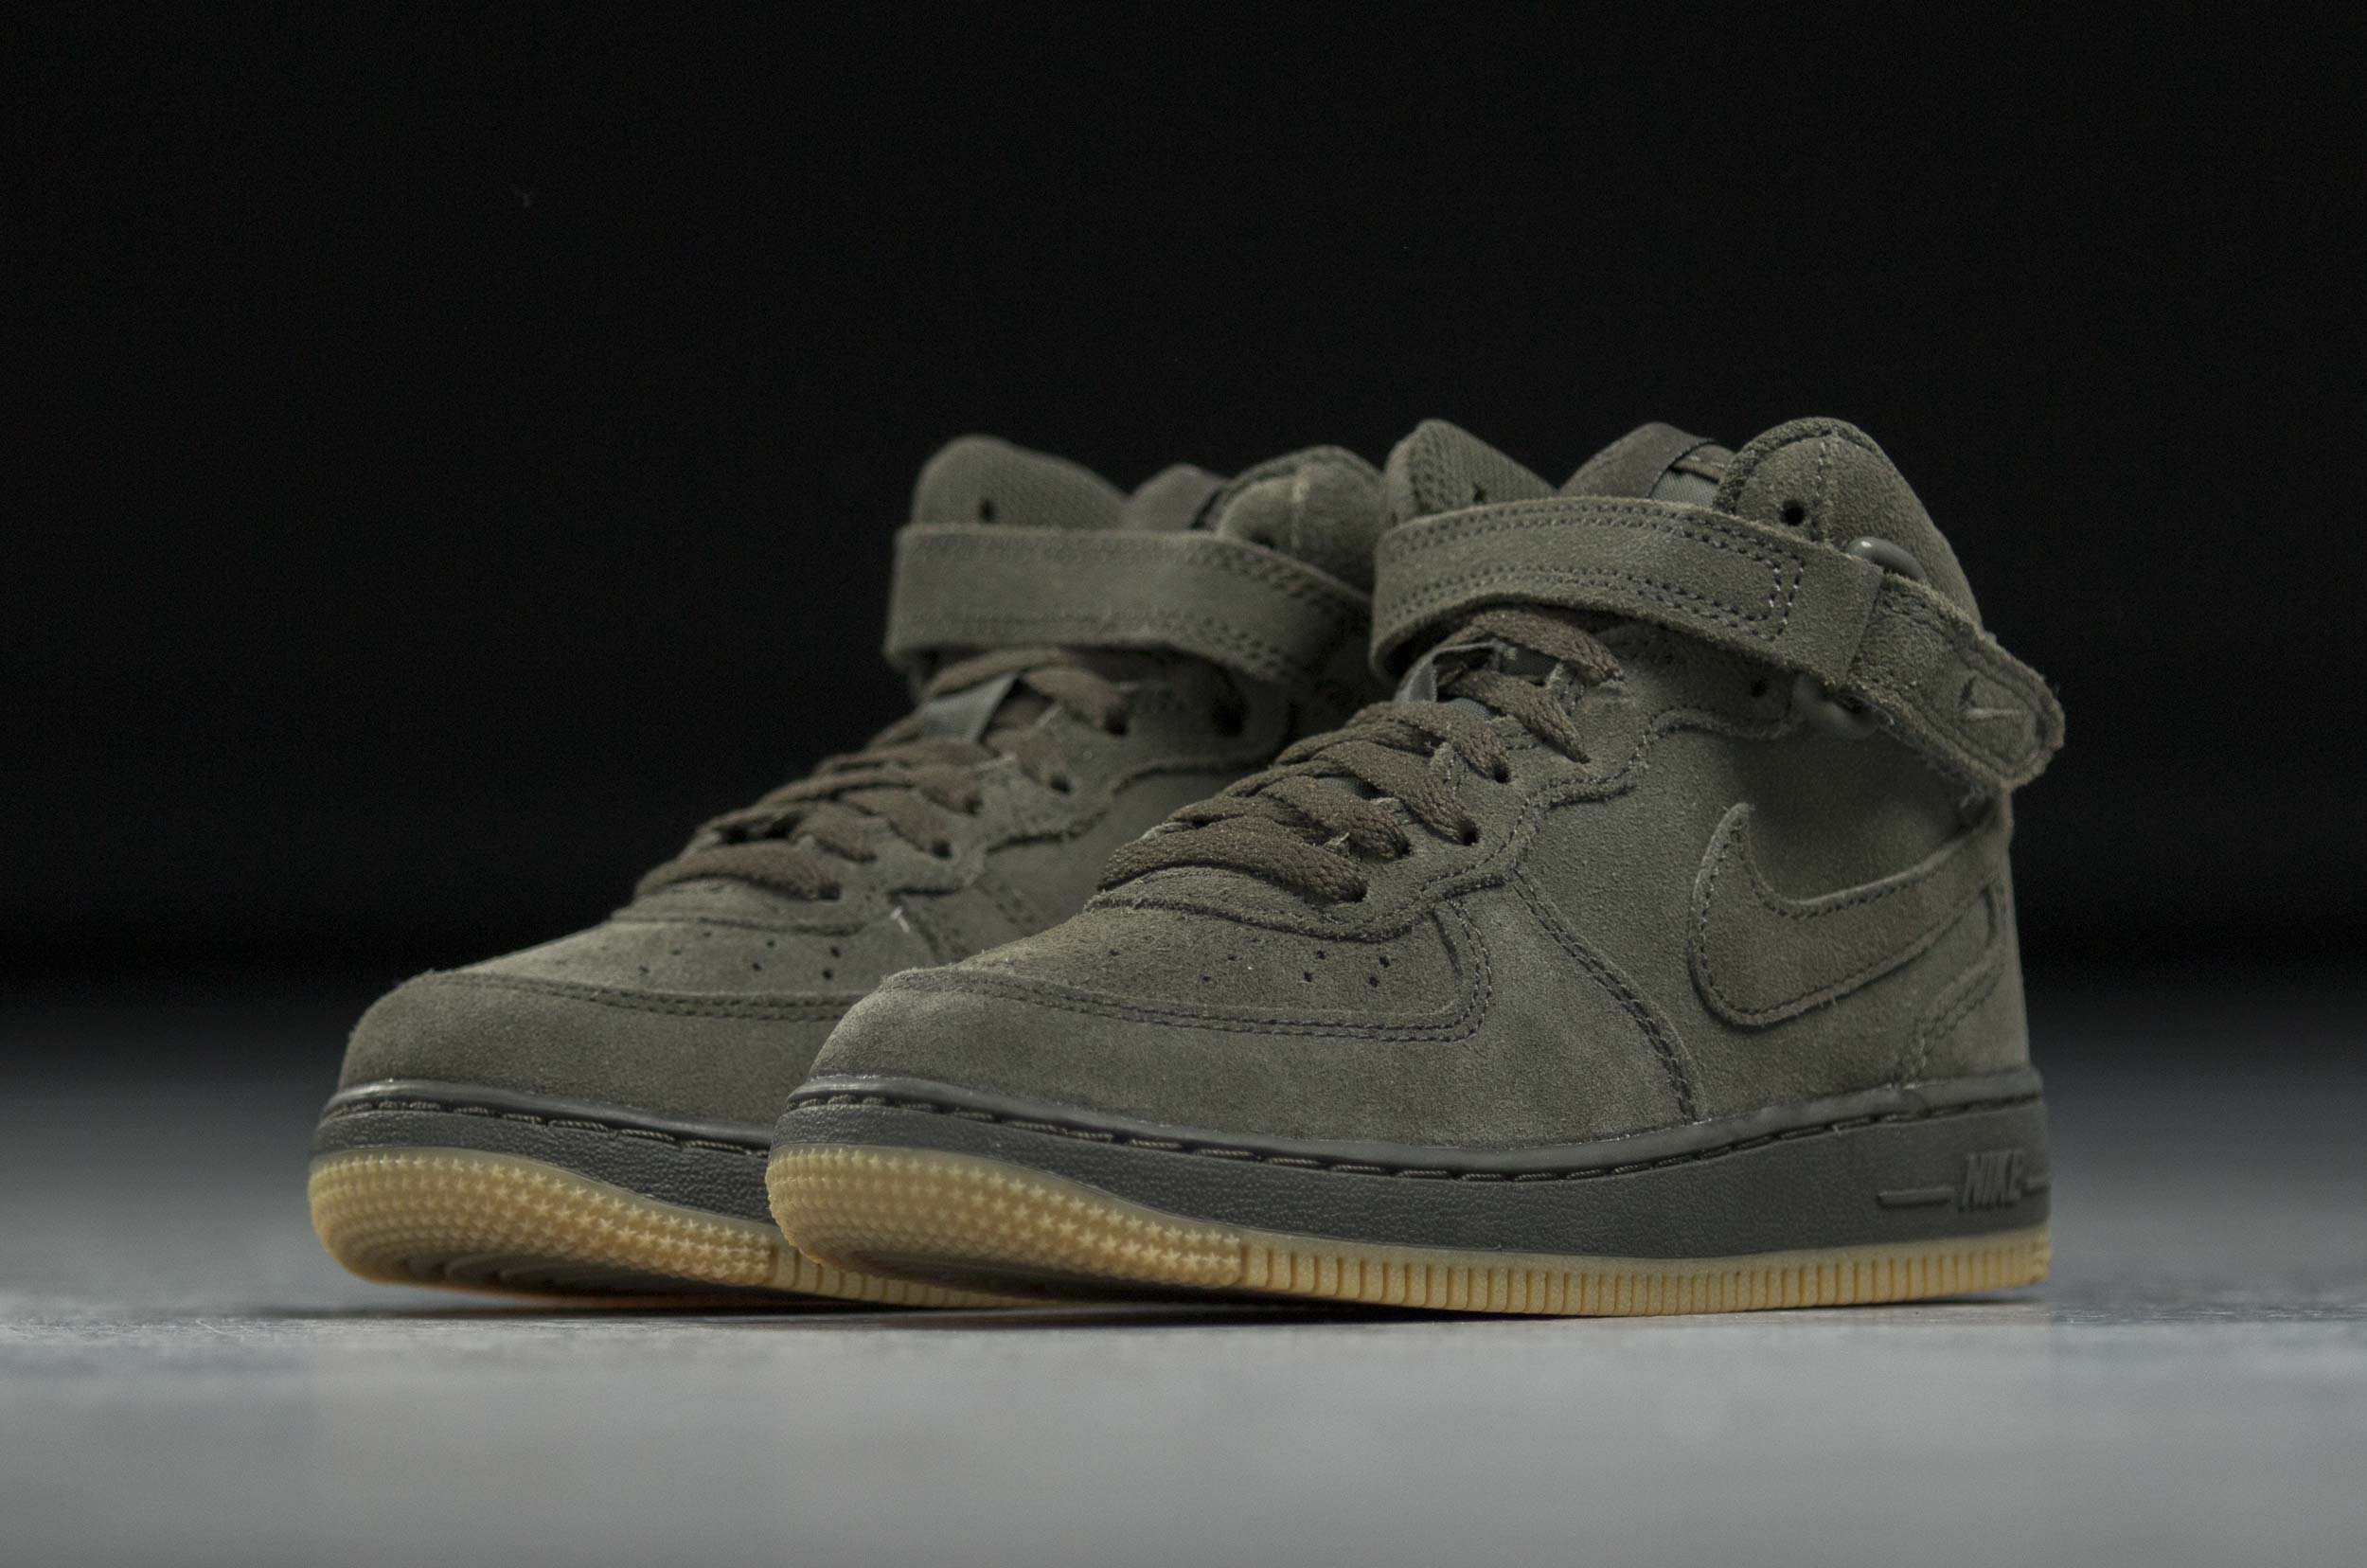 NIKE FORCE 1 MID LV8 PS 859337-300 Χακί